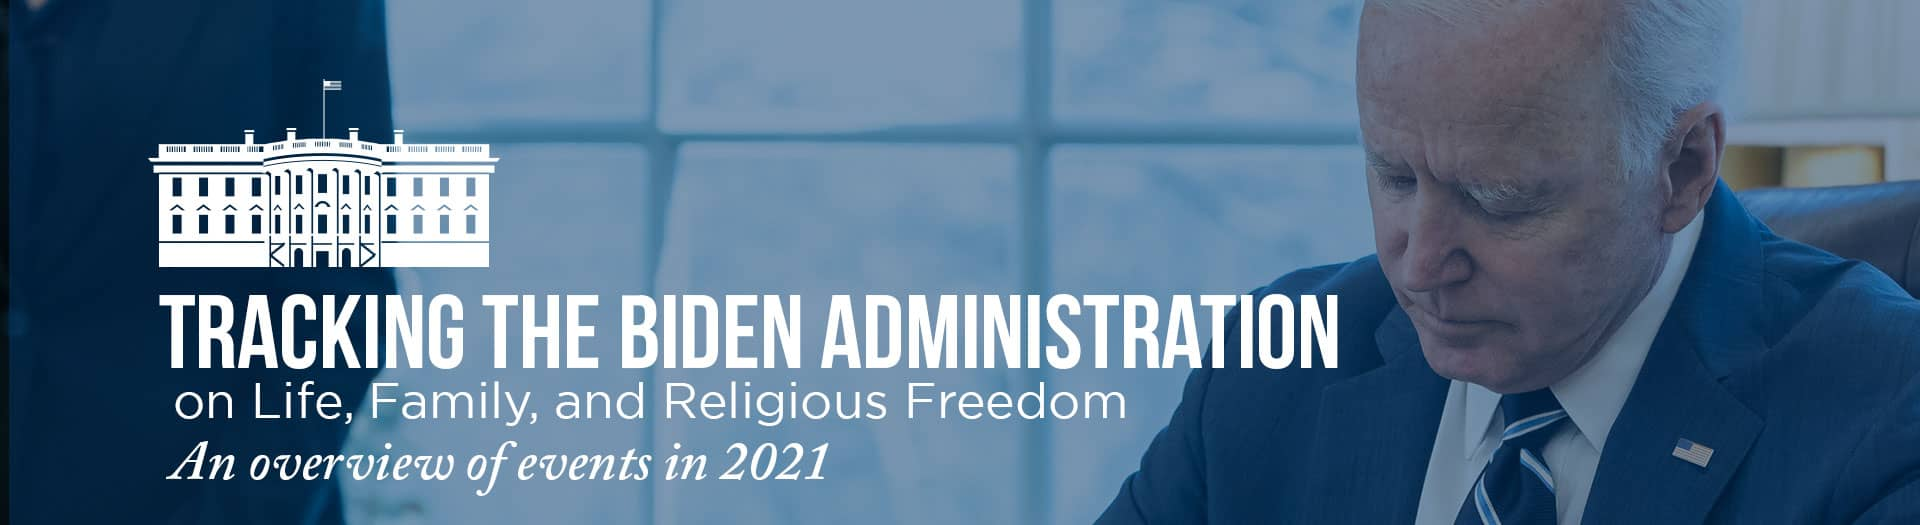 Tracking the Biden administration on life, family, and religious freedom